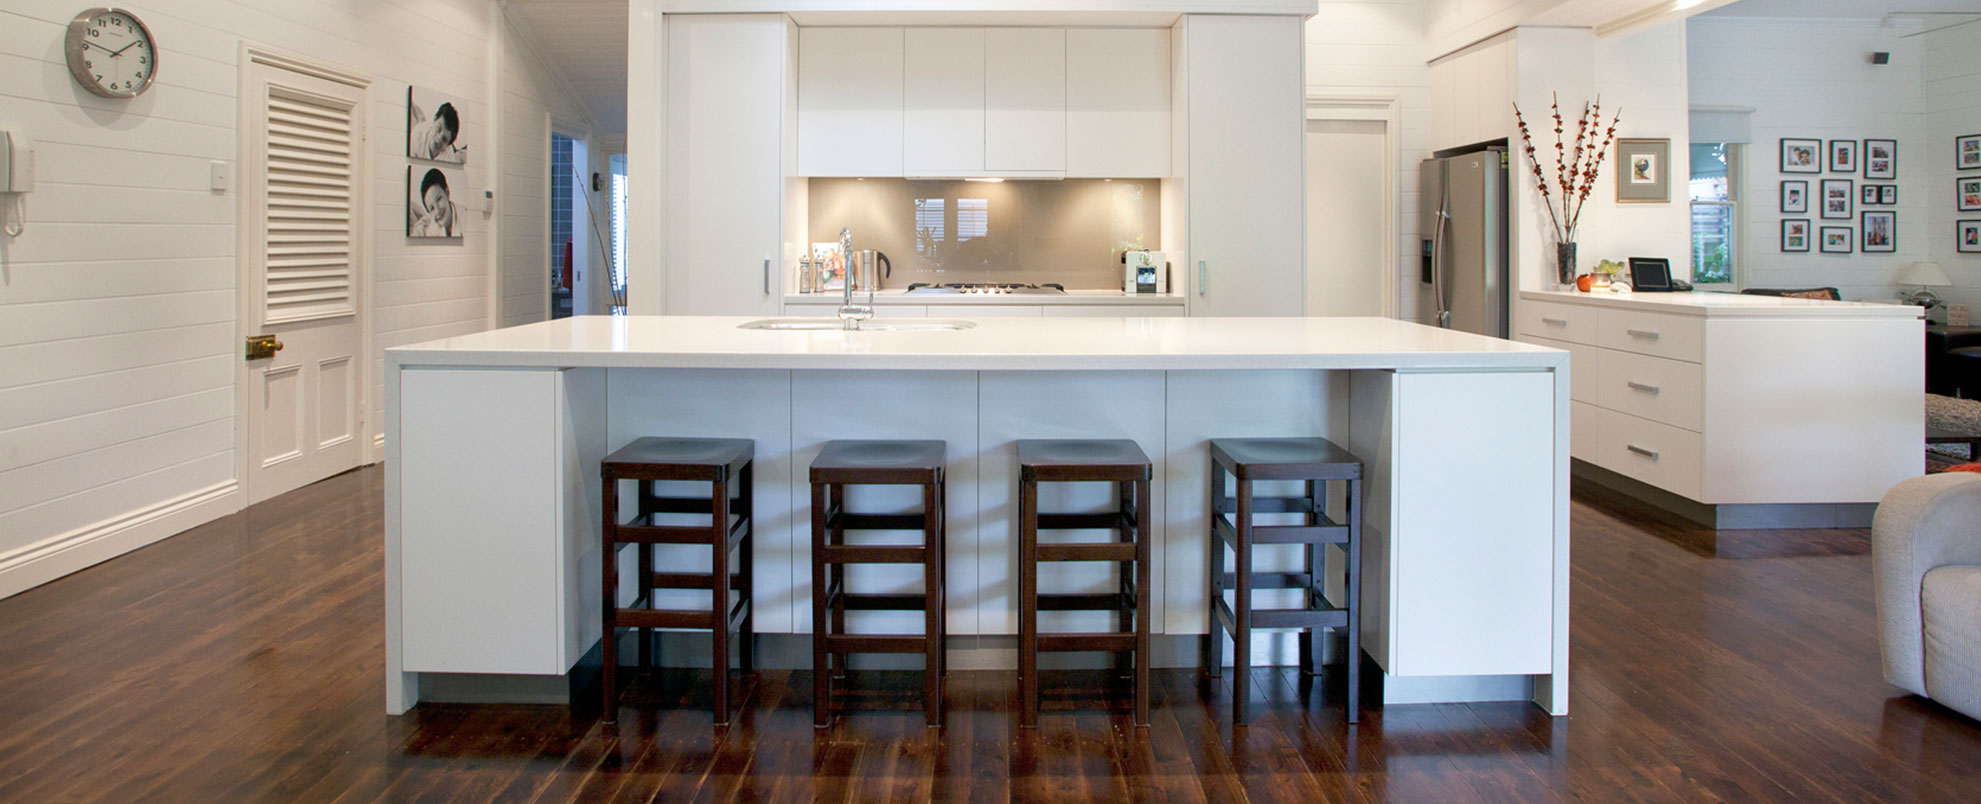 Custom Made Joinery Brisbane Interior Joinery Custom Cabinetry